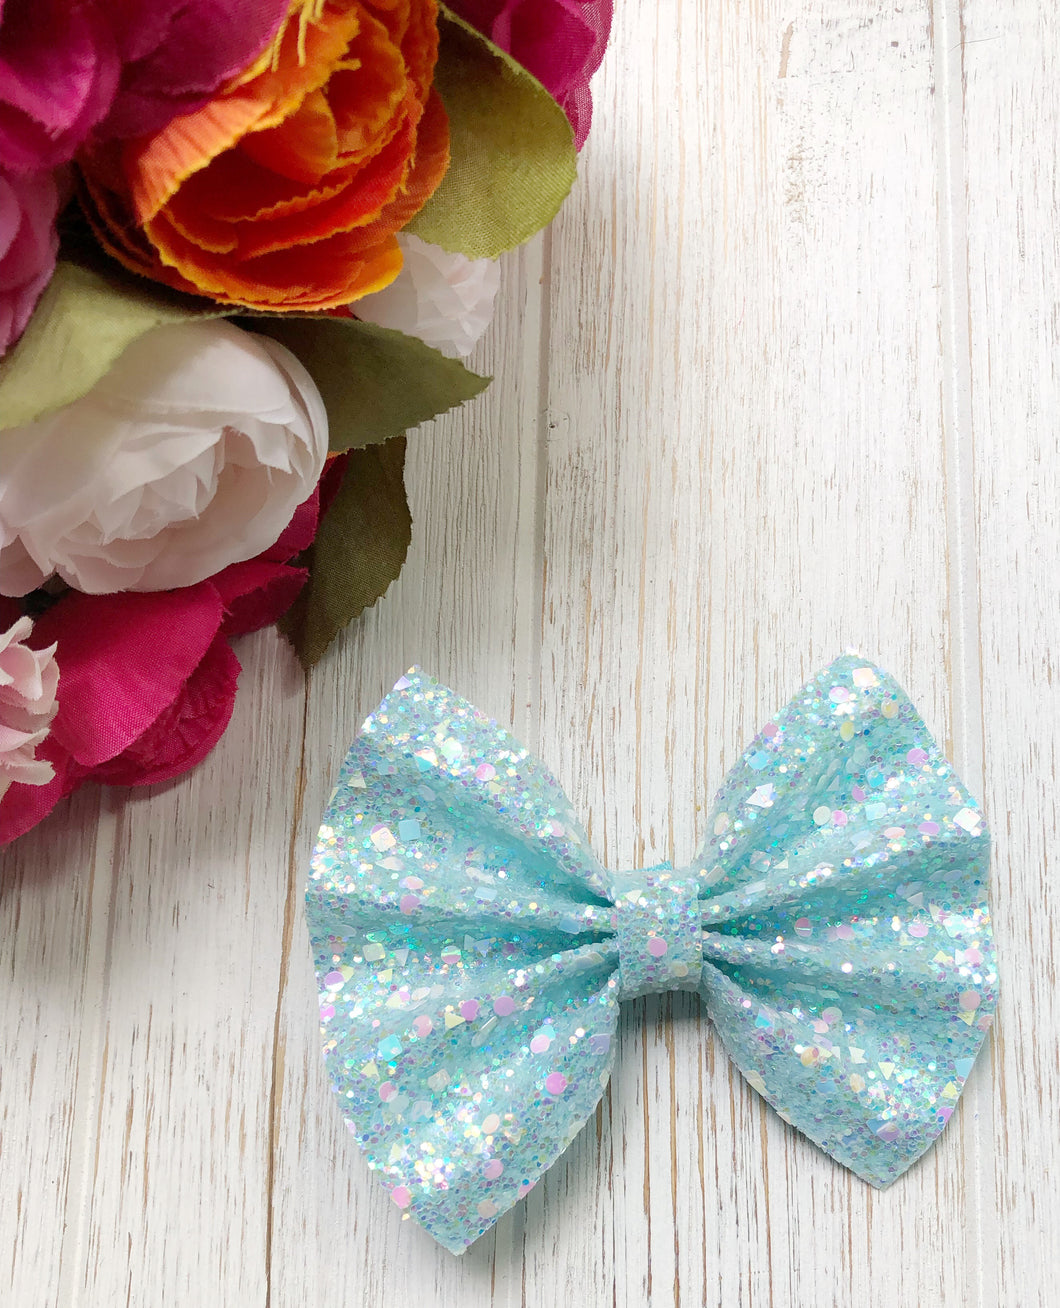 glitter, glitter bow, braid, hair clip, girl, toddler, bow, bows, headband, headbands, head wrap, baby, baby shower, baby photography, photography prop, girl hair style, hairstyles, Fabric Bow, faux leather bow, Hair bow, newborn bow, girls hair bow, toddler hair bow, newborn photography, hair accessory, baby girl, pool bow, summer bow, blue glitter bow